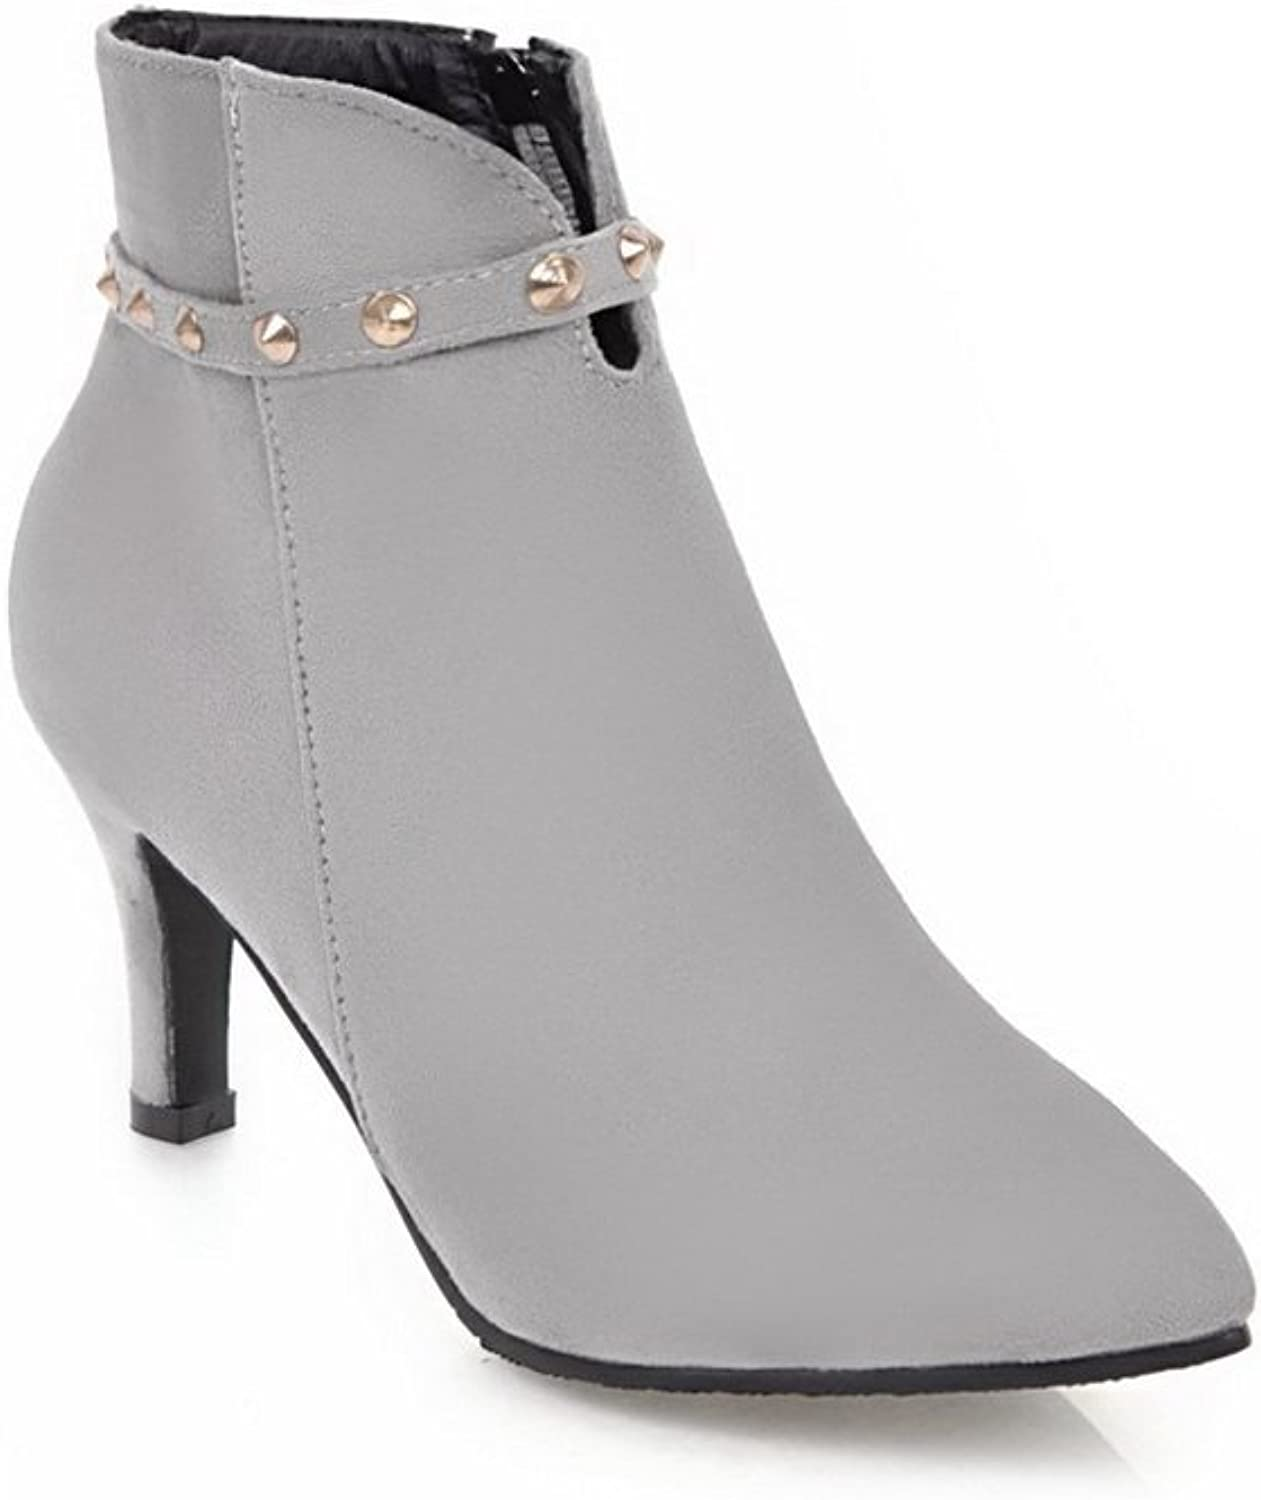 BalaMasa Womens Grommets Ankle-Wrap Ankle-High Suede Boots ABL10574